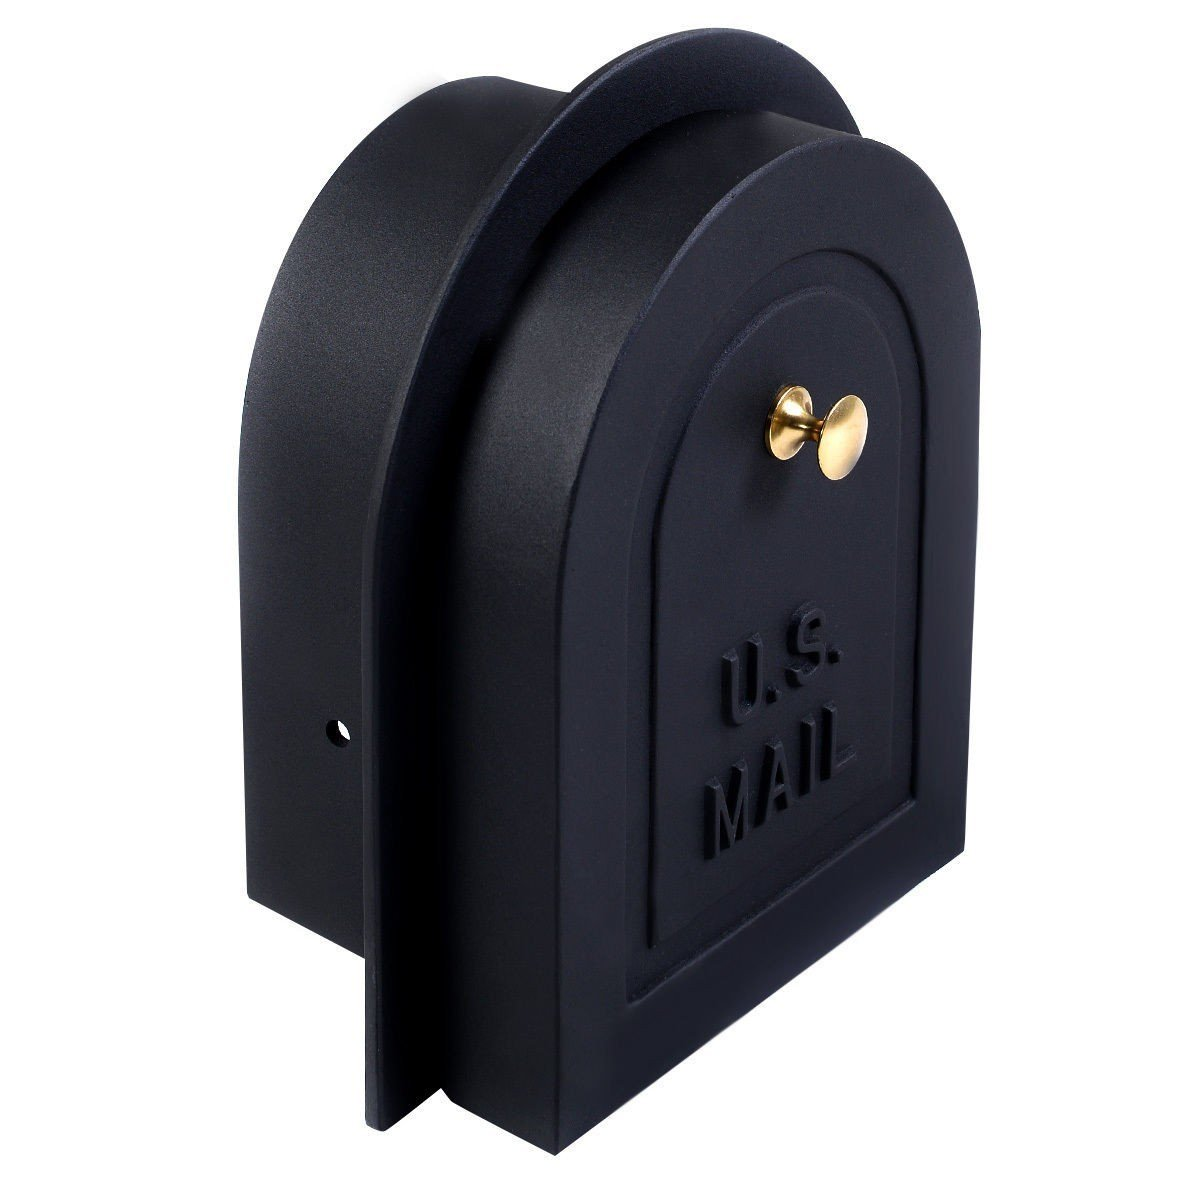 8'' Brick Stone Stucco Mailbox Door - Cast Aluminum Replacement Doors Mailboxes by Apontus (Image #1)